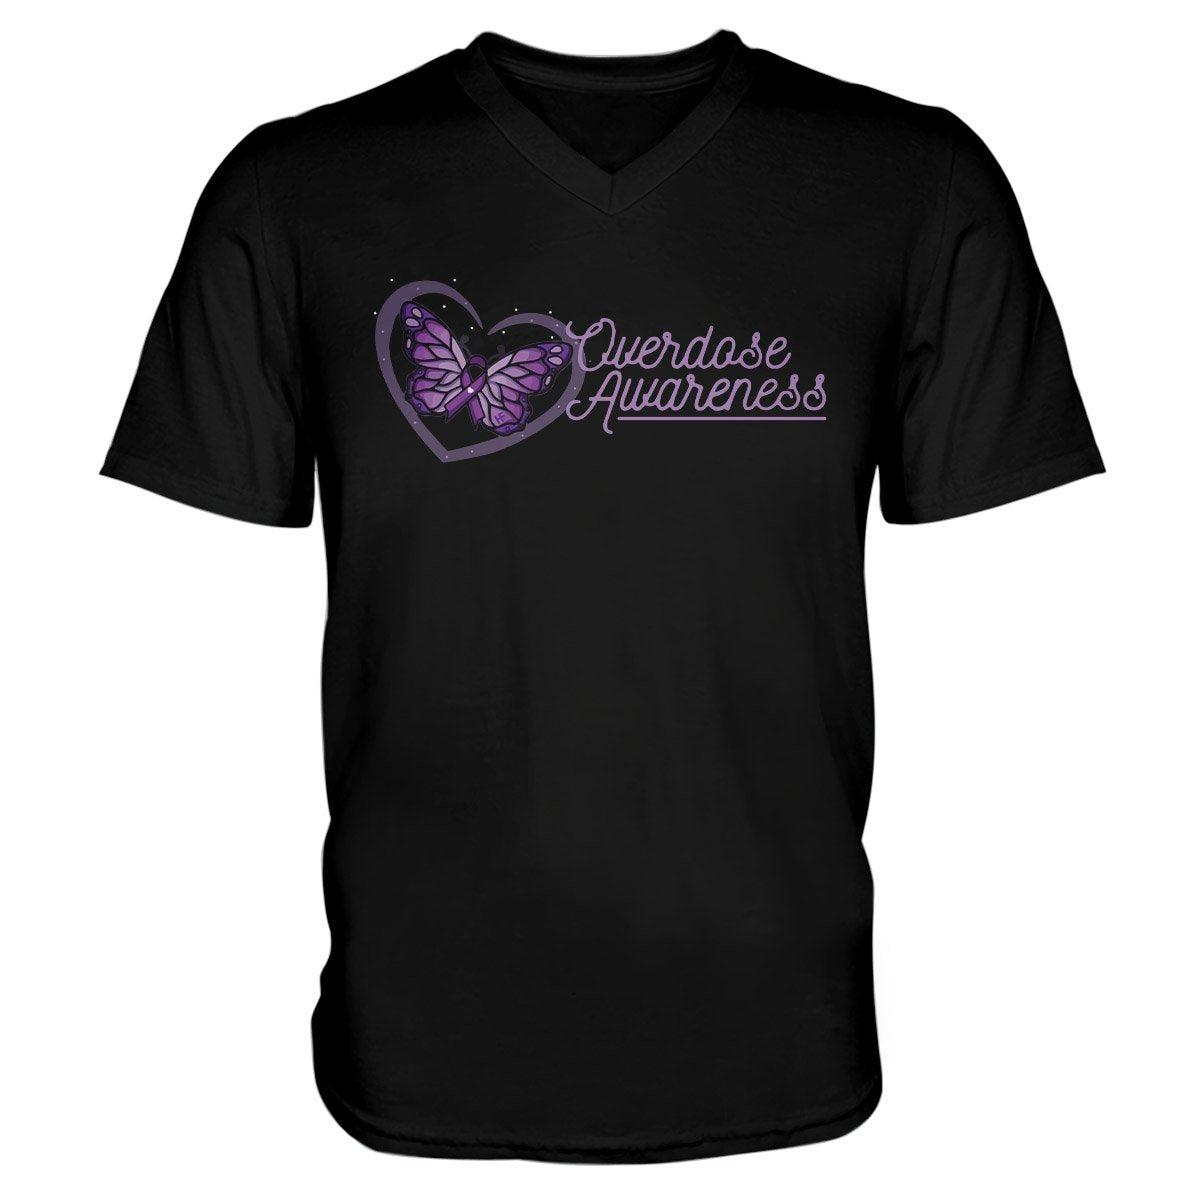 Overdose Awareness Unisex V-neck T-shirt